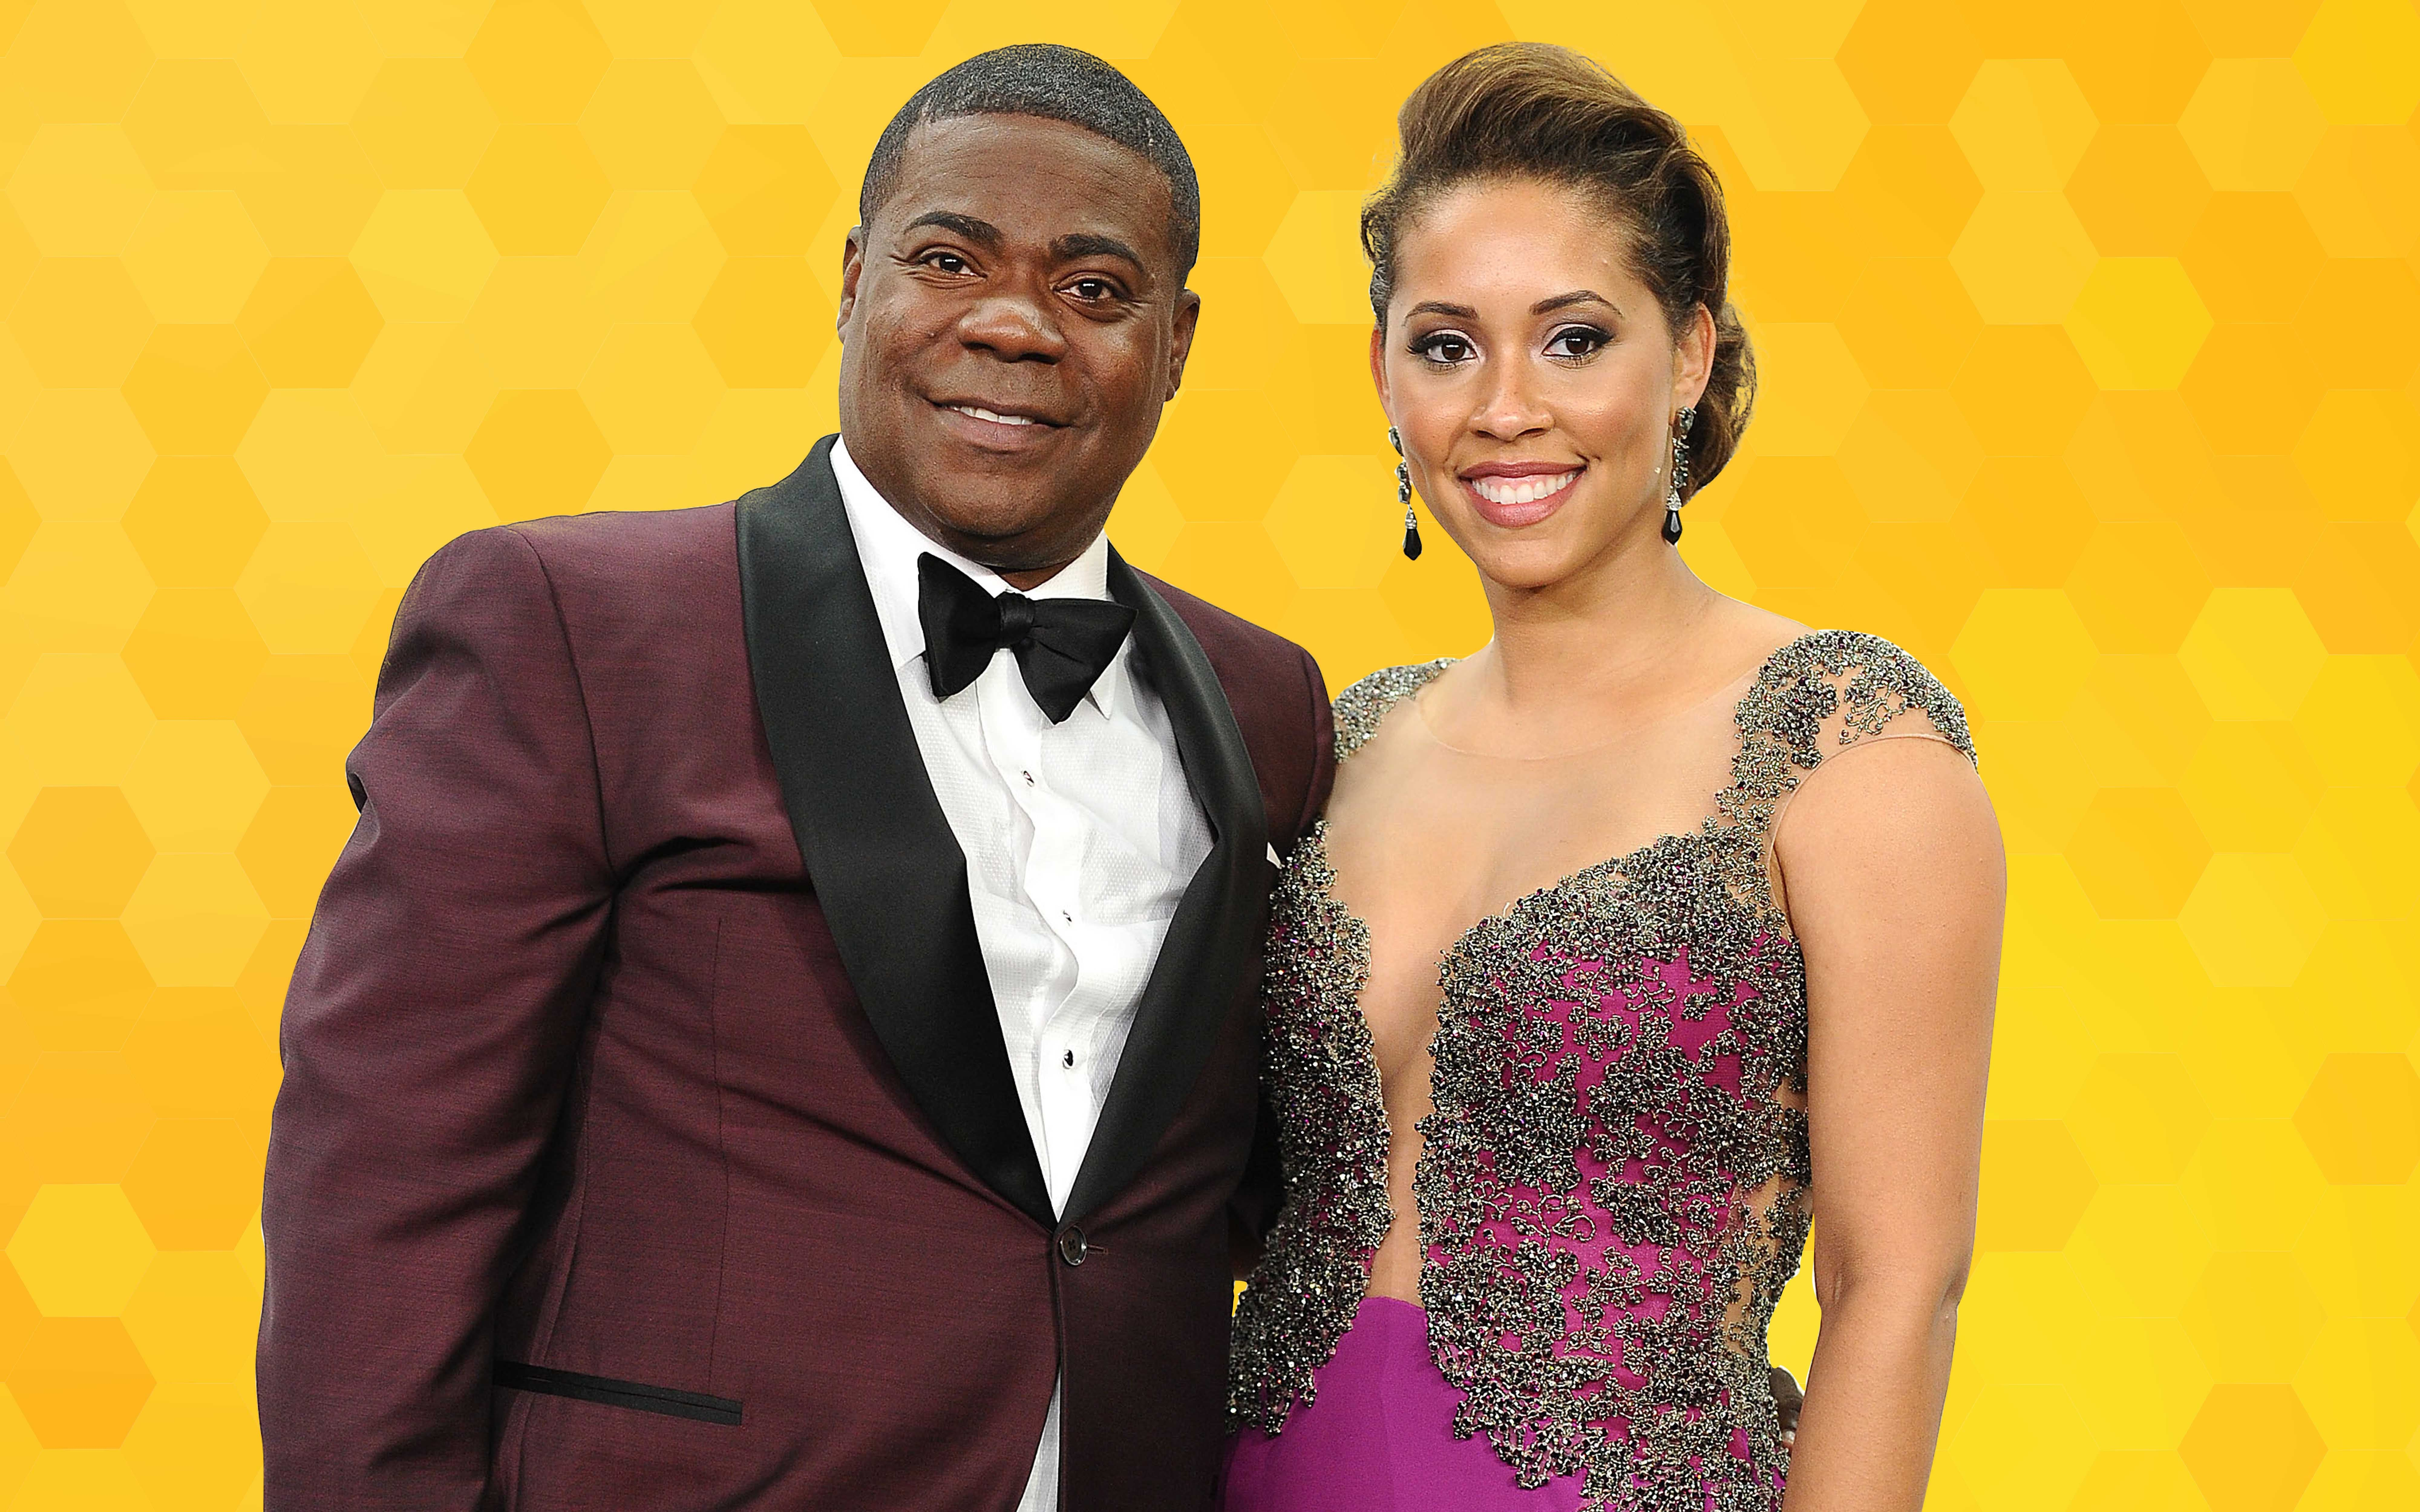 tracy morgan s wife megan morgan on the call that changed. Black Bedroom Furniture Sets. Home Design Ideas